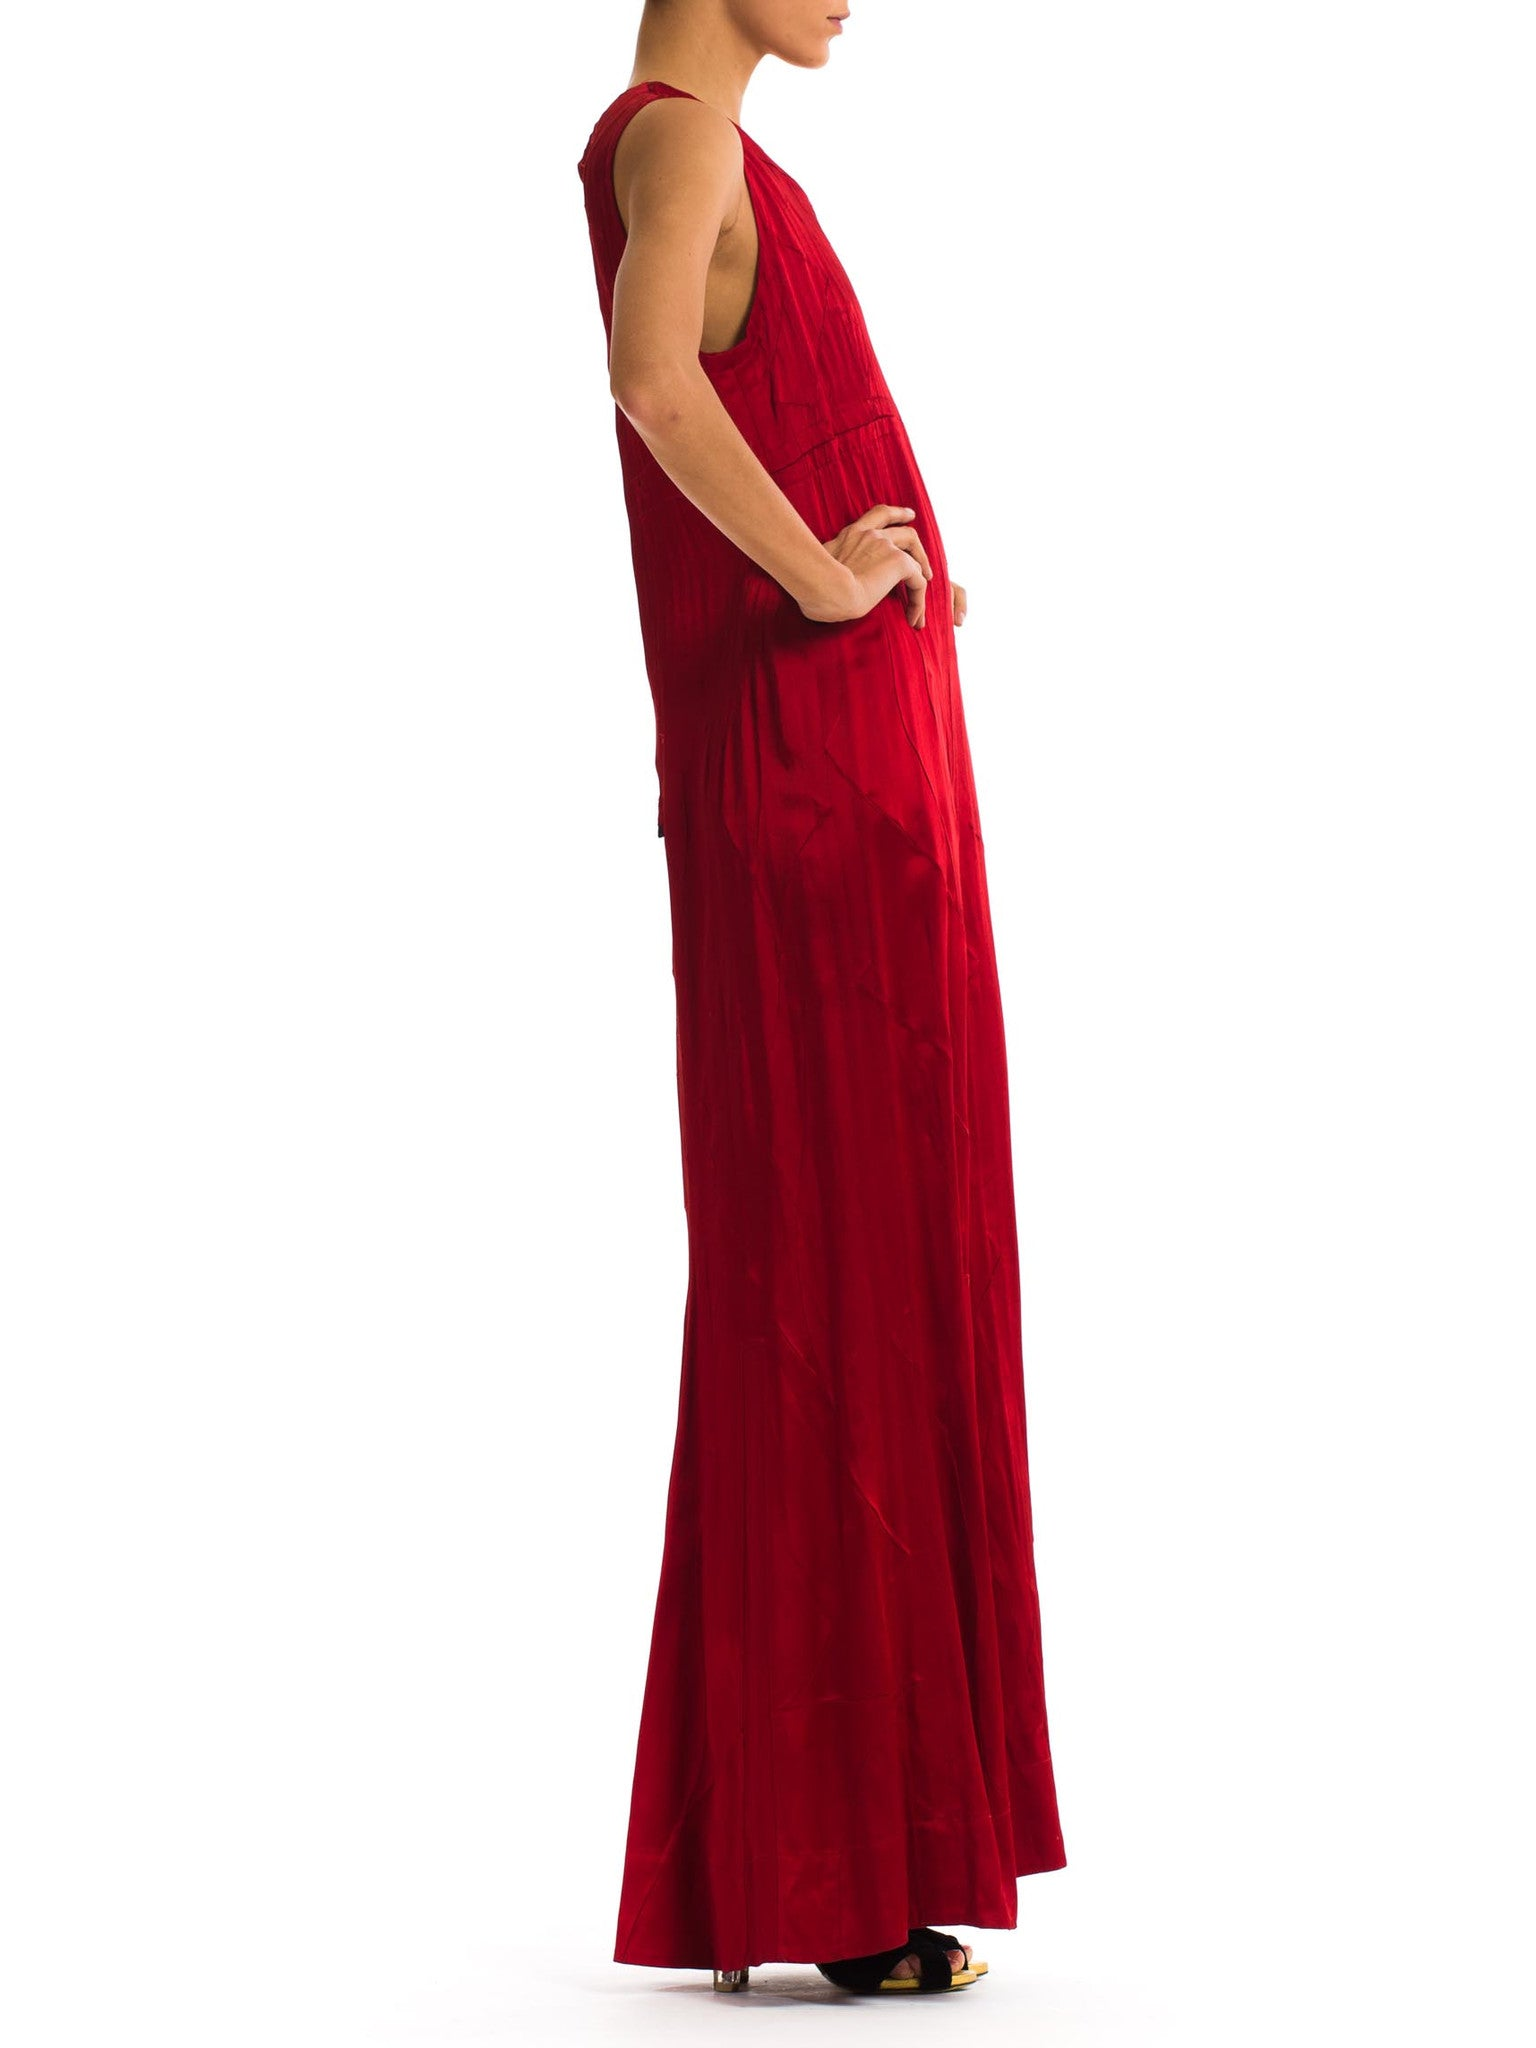 1990S Deep Red Rayon Crepe Back Satin Modernist Gown With Unique Pin Tuck Embroidered Vines